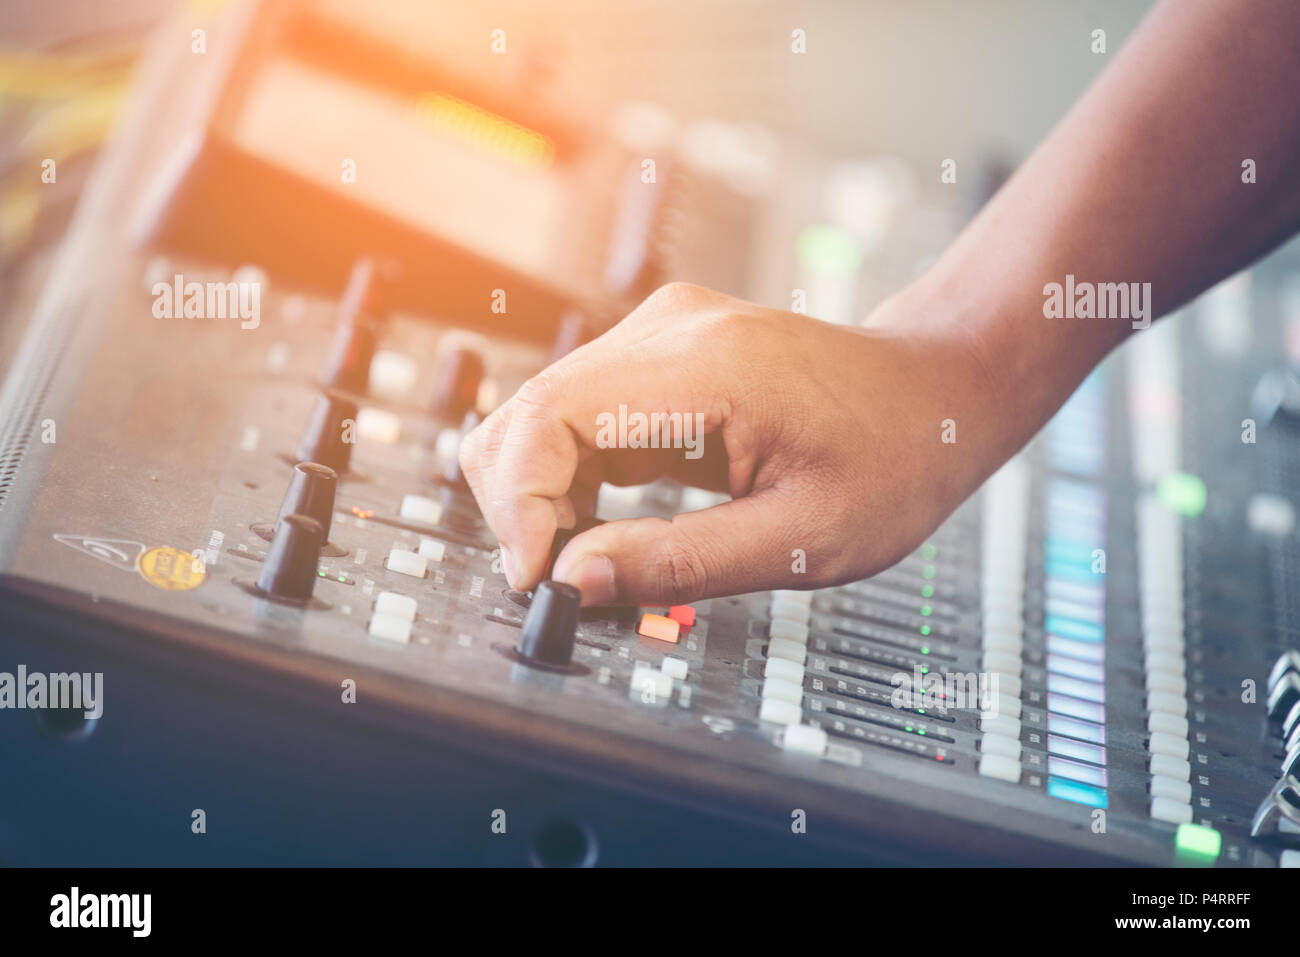 professional stage sound mixer closeup at sound engineer hand using audio mix slider working during concert performance - Stock Image